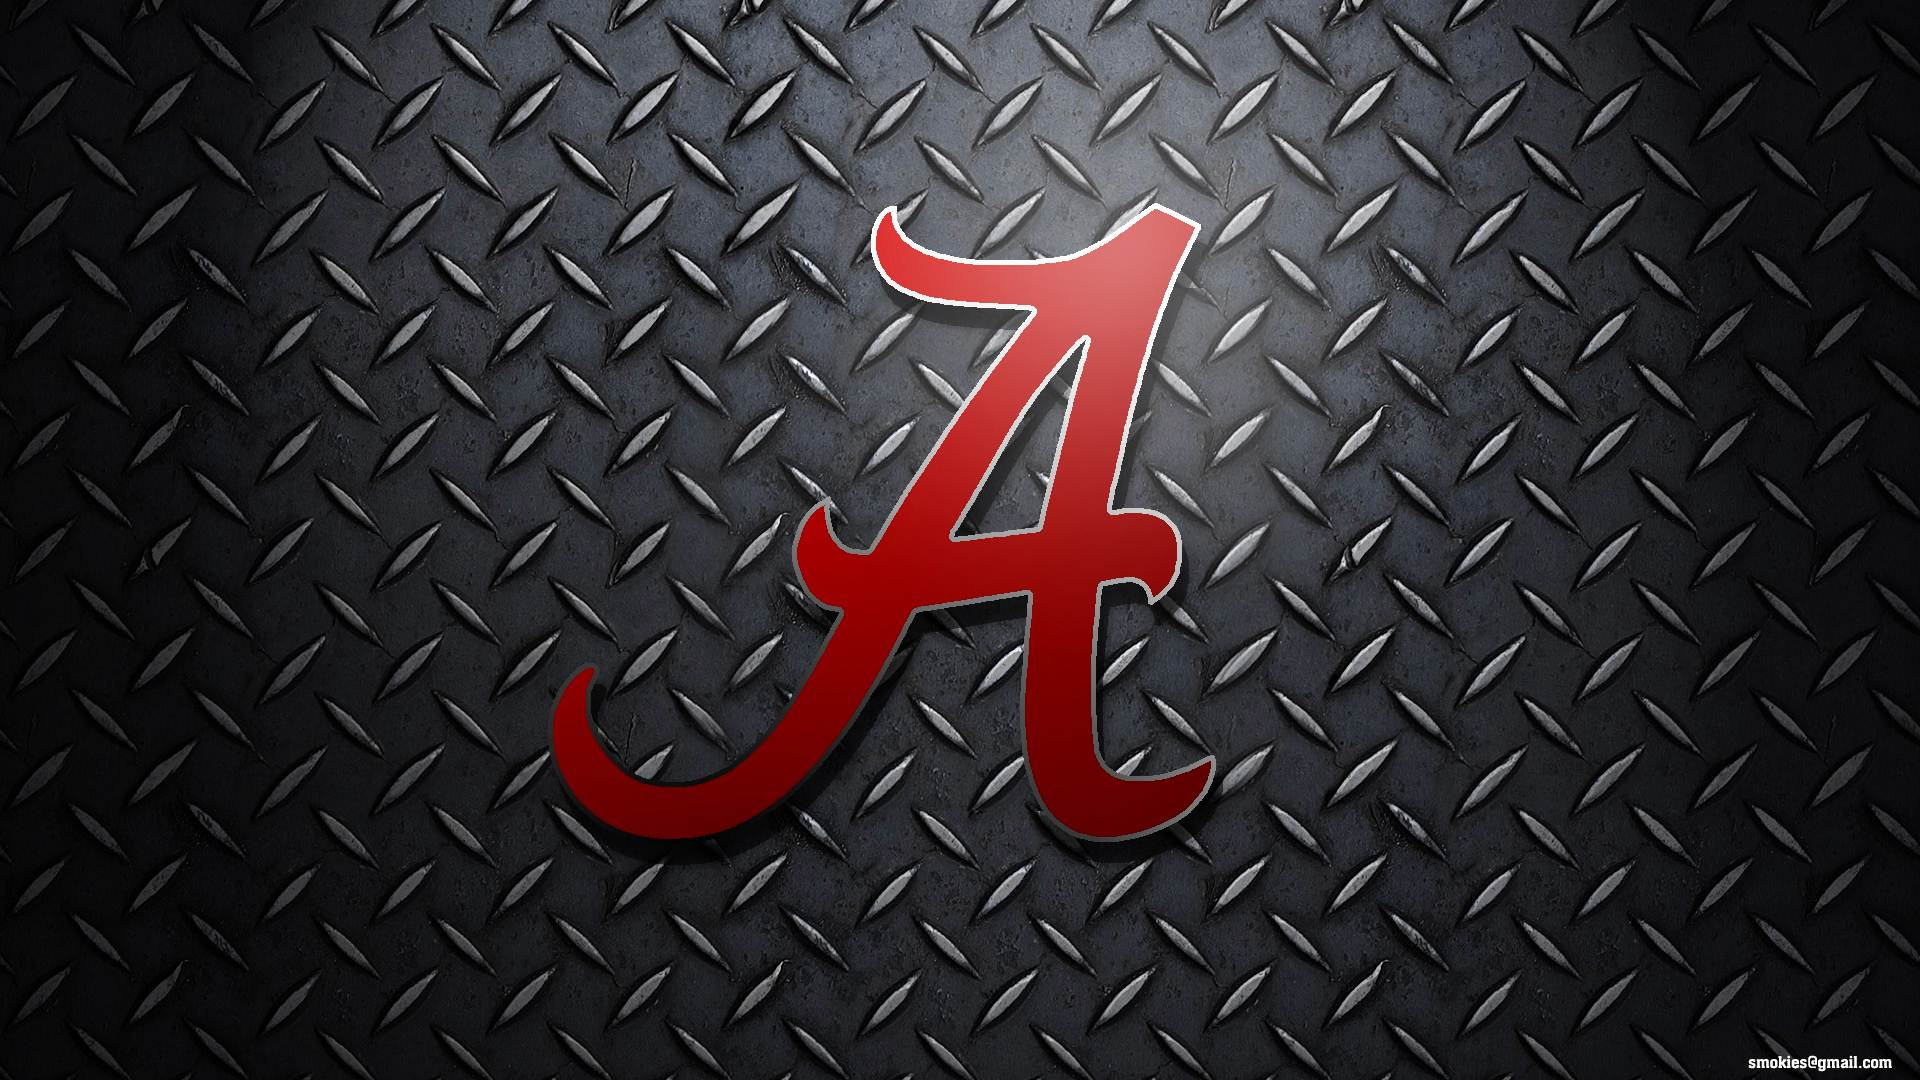 The Alabama Crimson Tide football team represents the University of